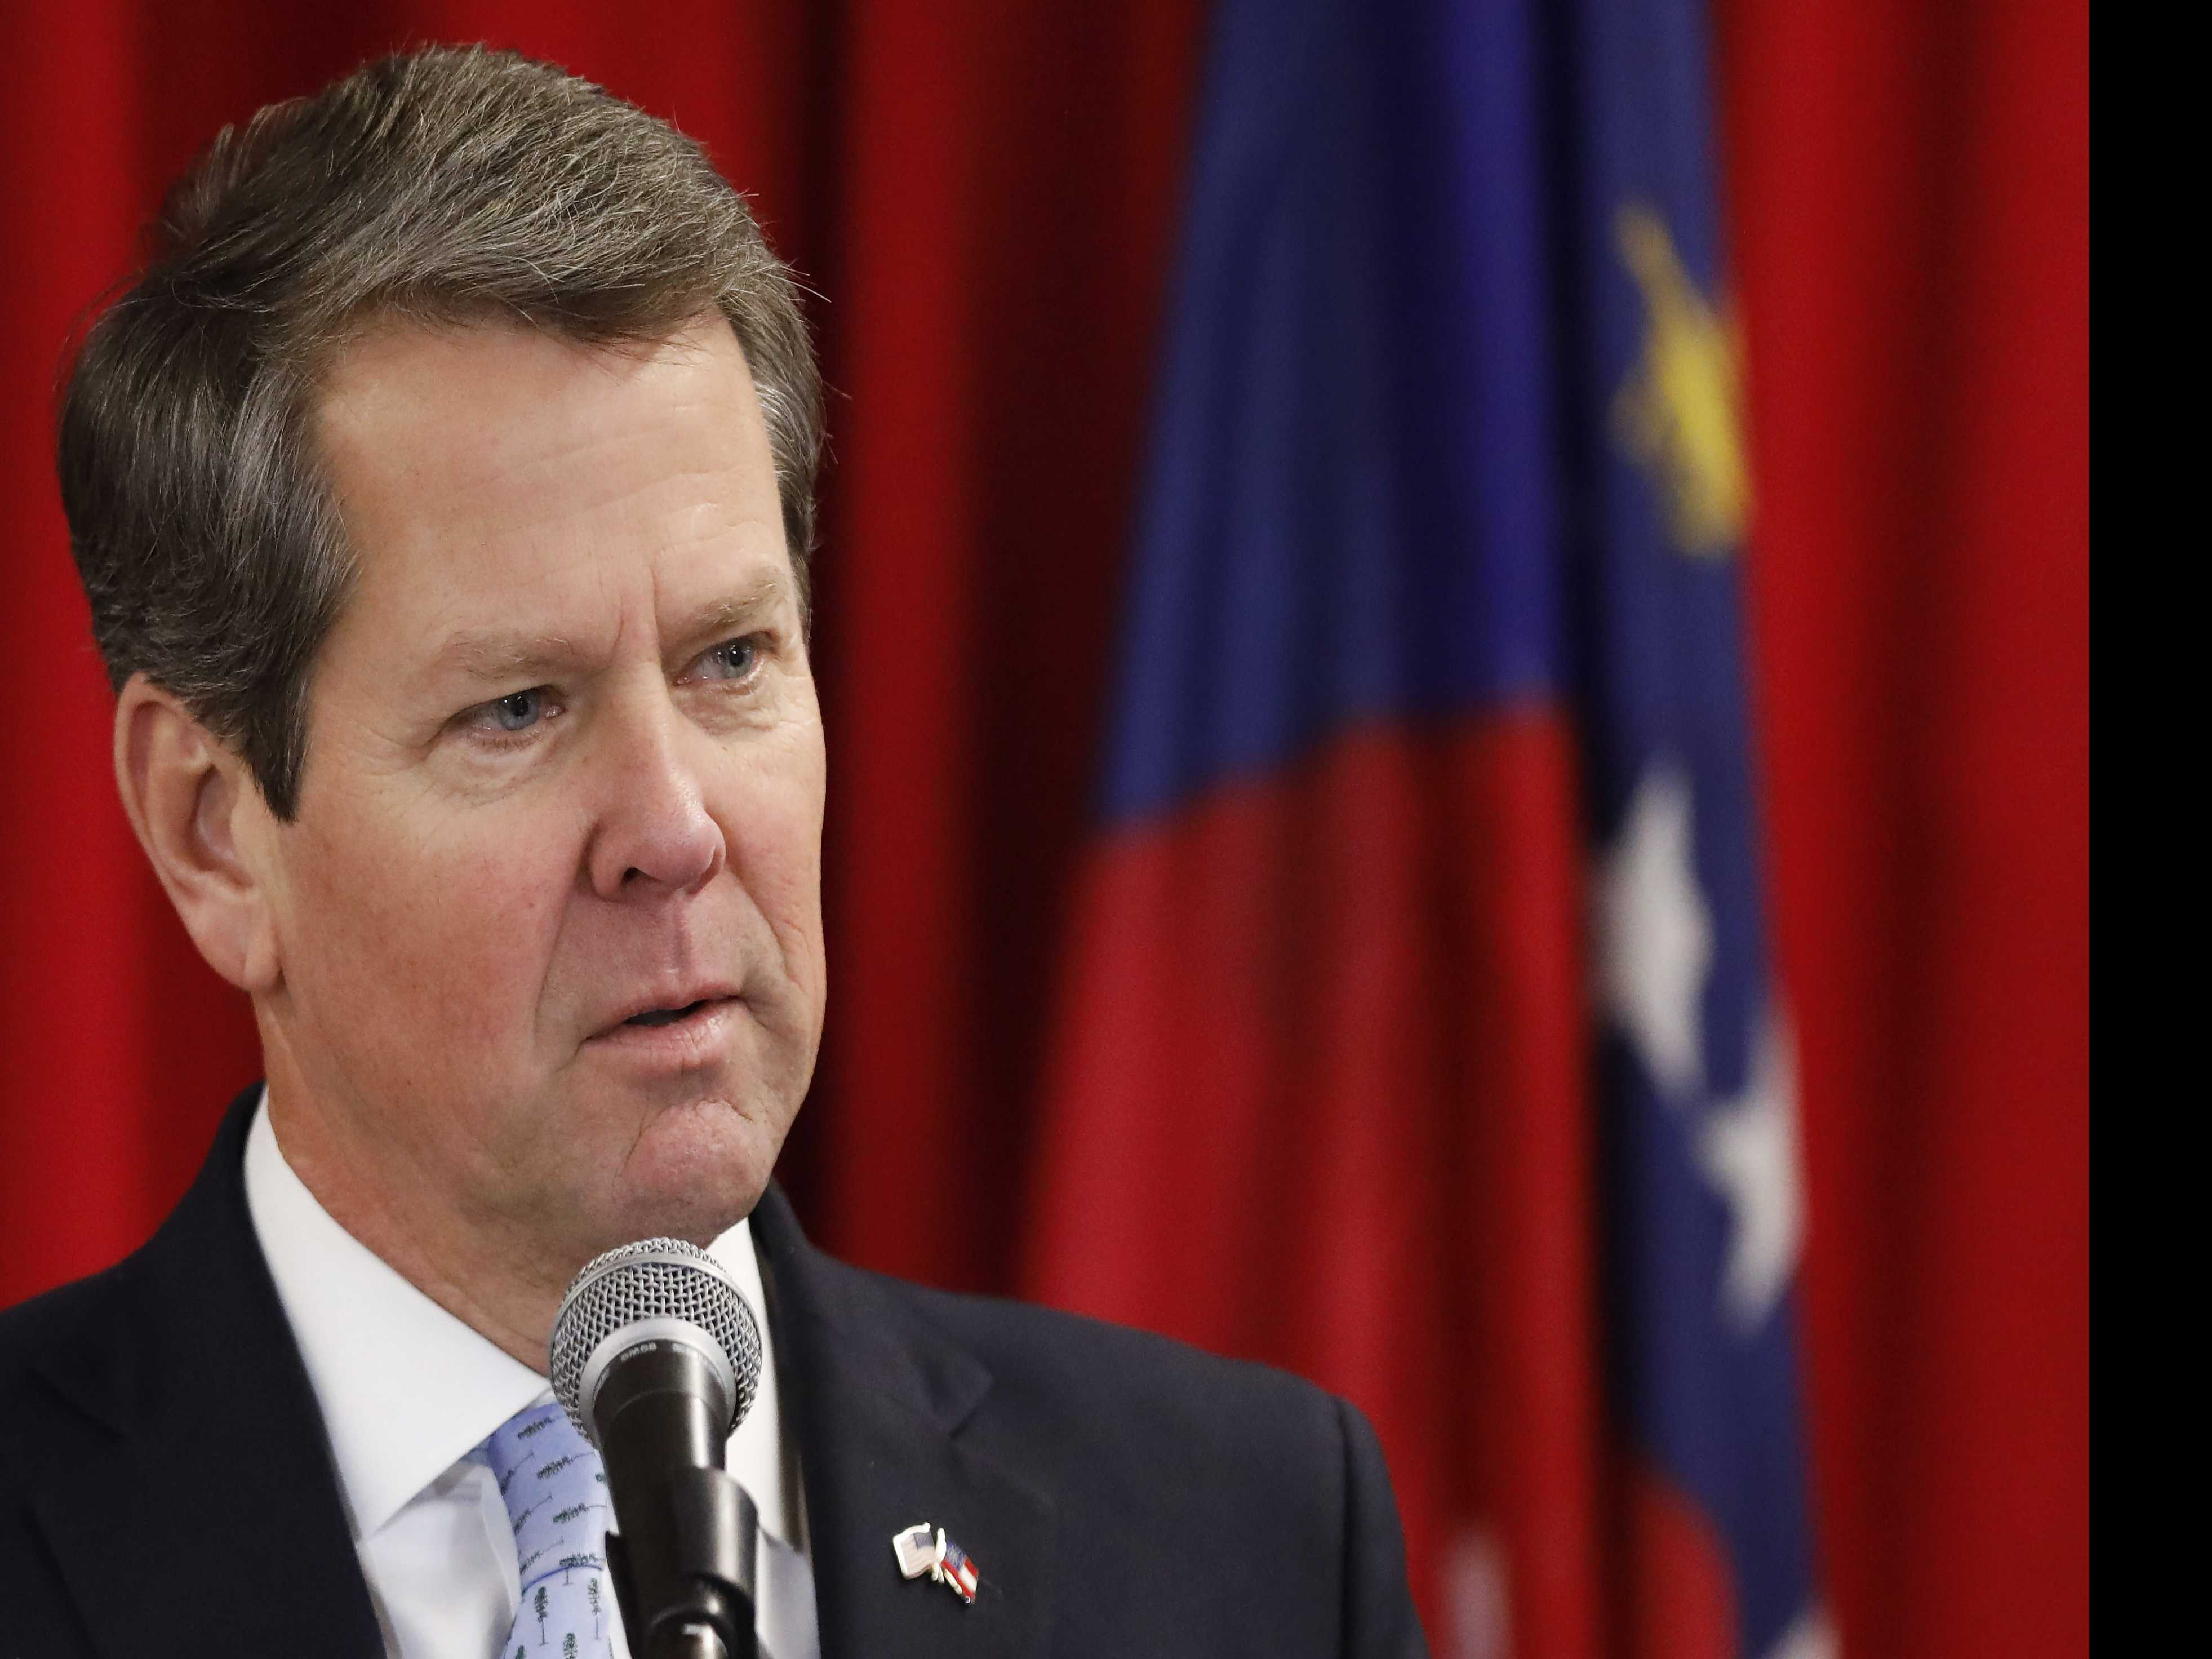 Governor Kemp Conciliatory in Georgia Inaugural Address